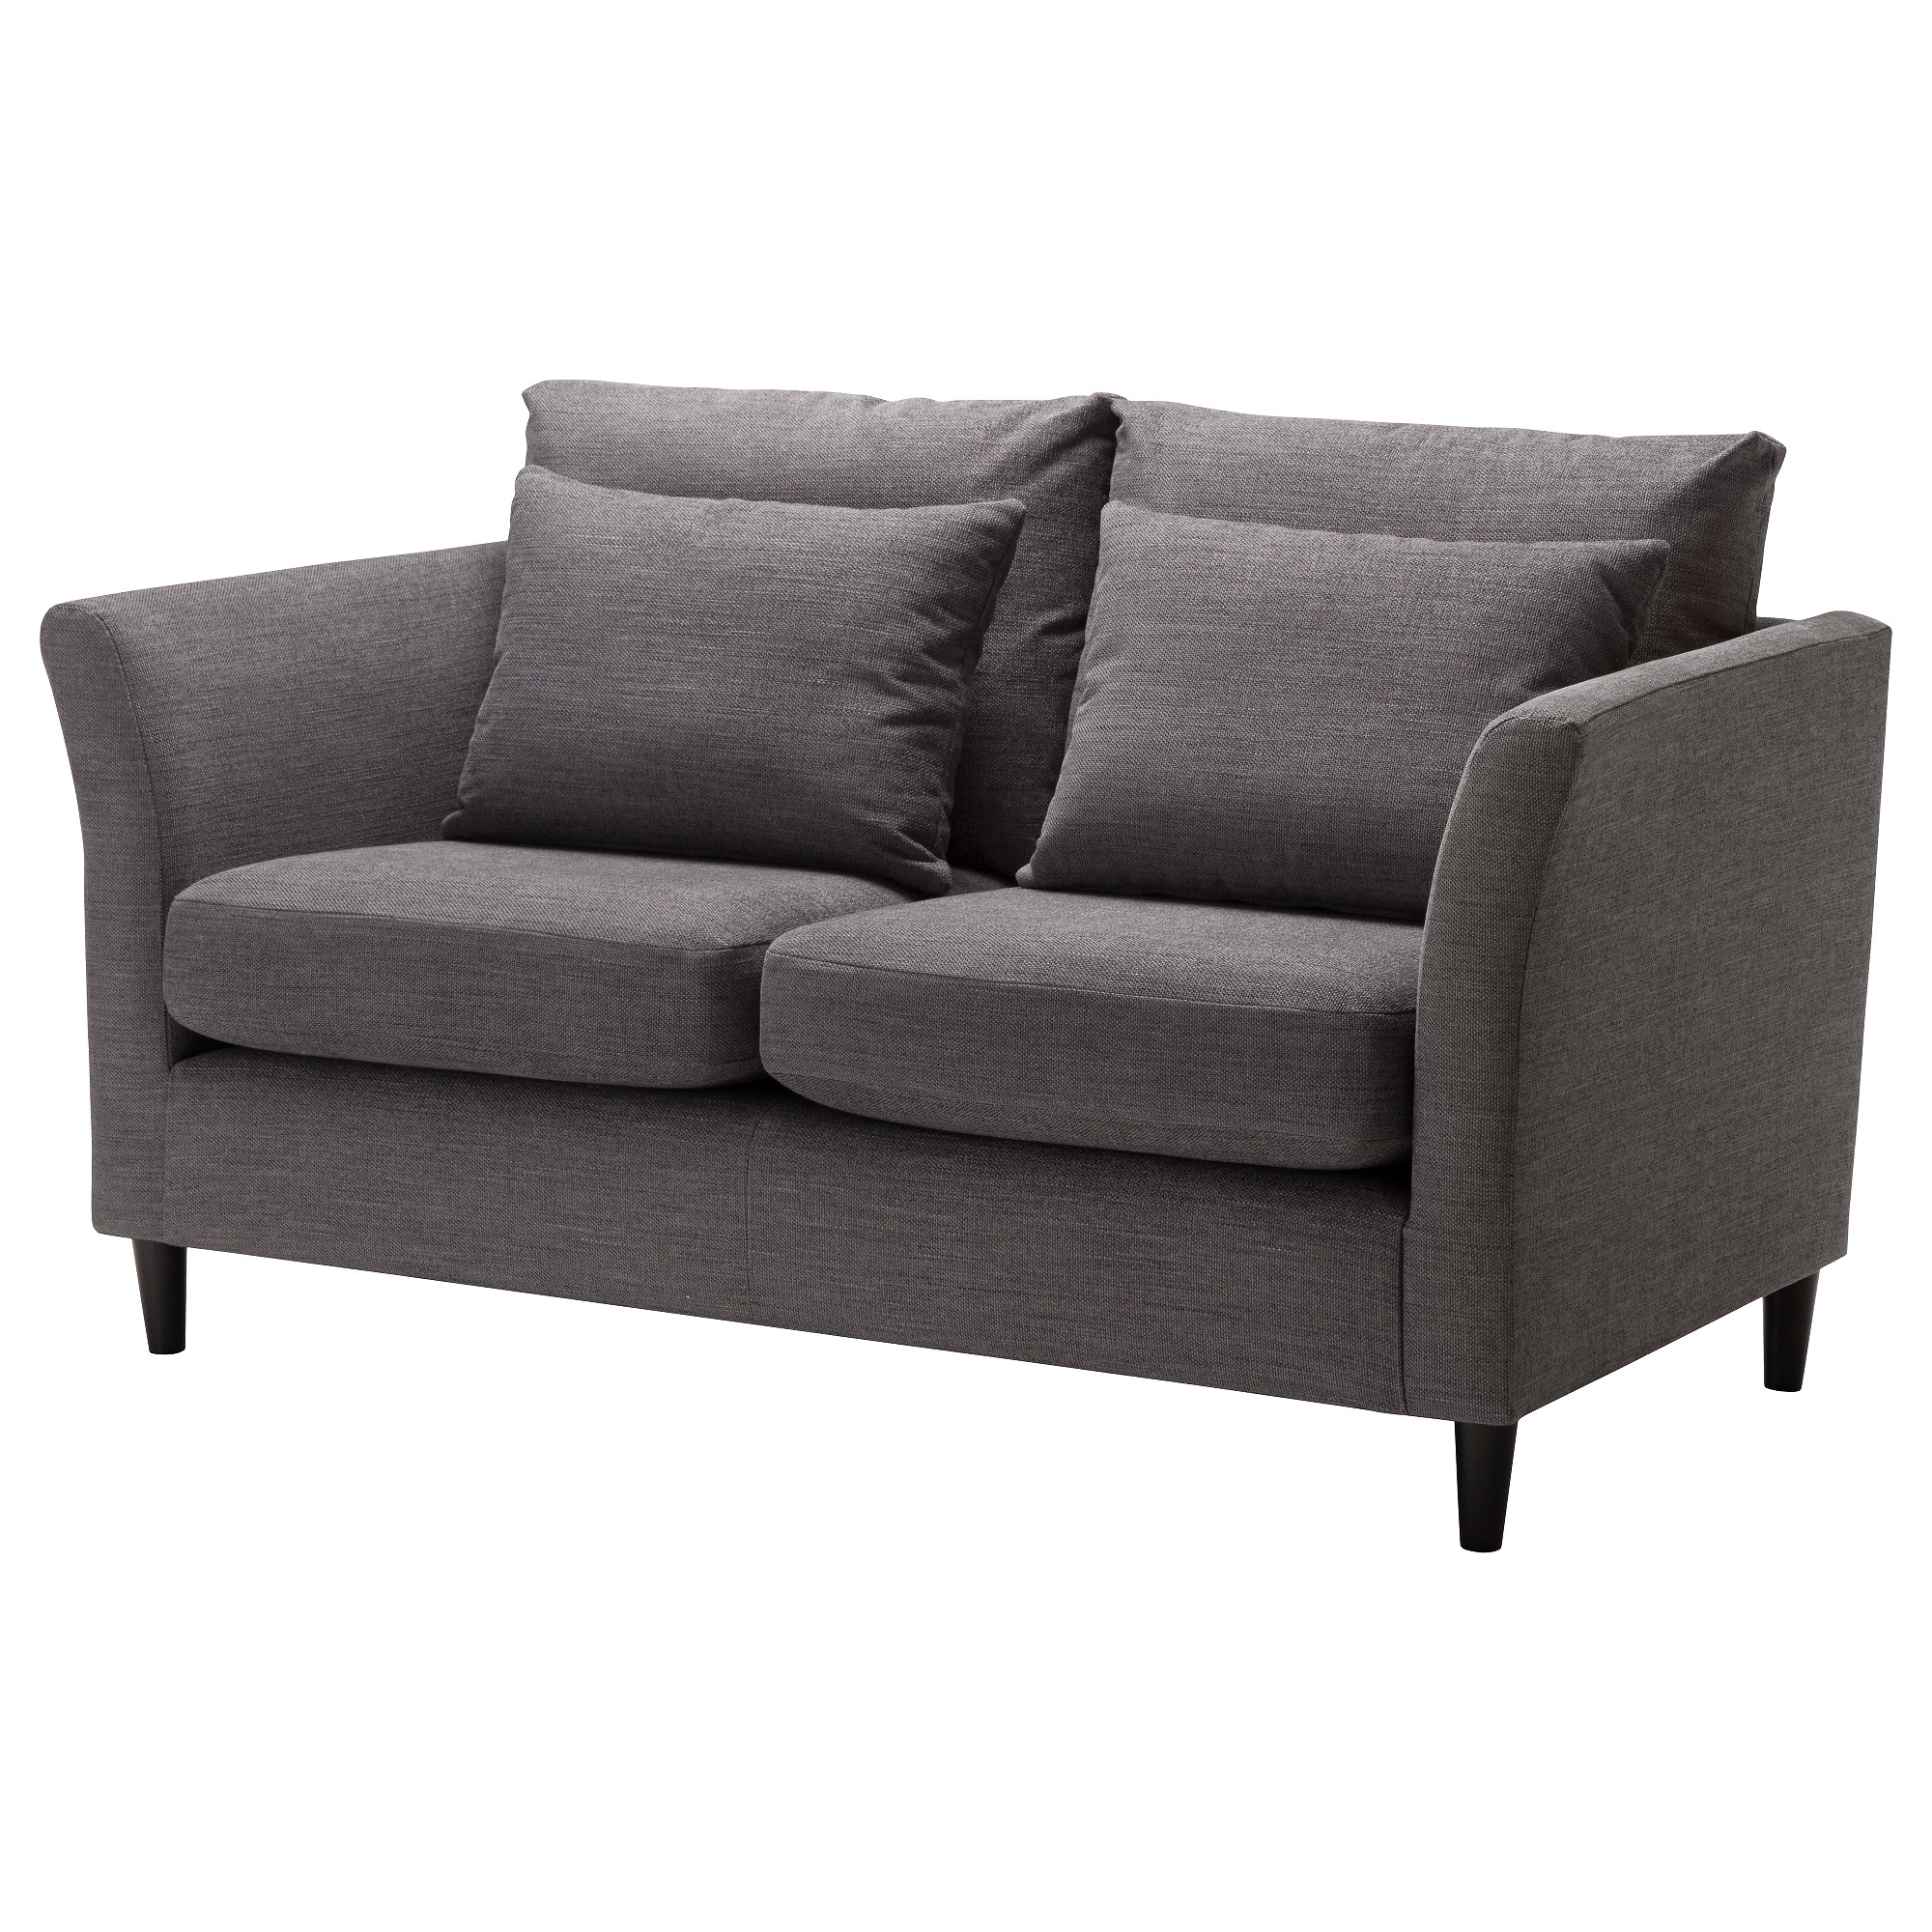 Two Seater Sofas | Ikea Ireland - Dublin in Mini Sofas (Image 9 of 10)